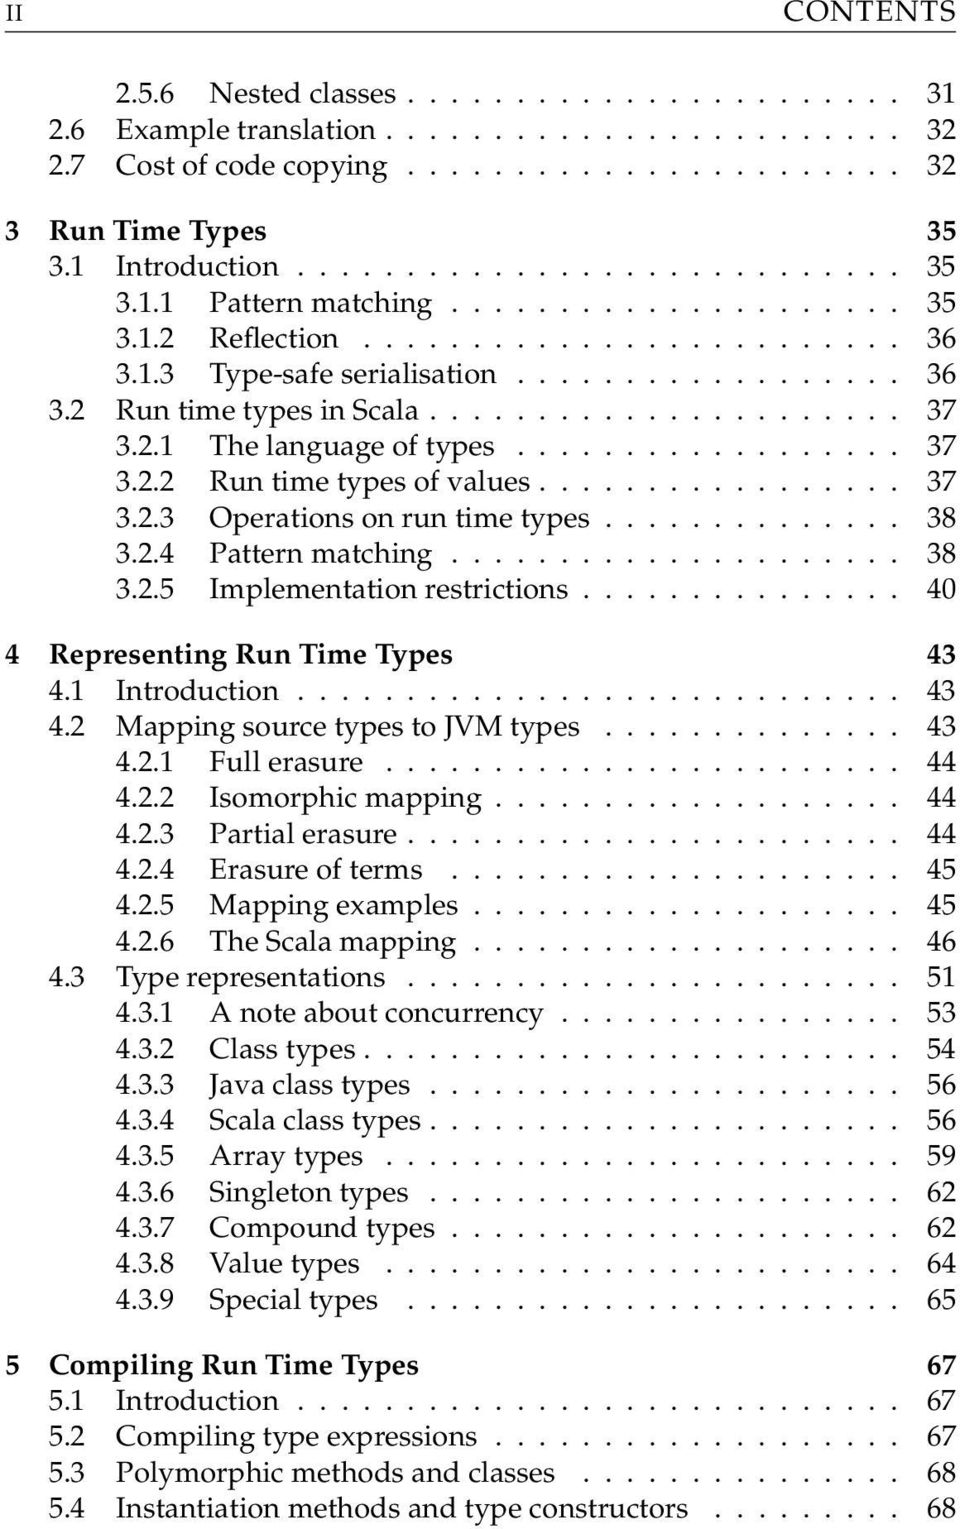 .. 40 4 Representing Run Time Types 43 4.1 Introduction... 43 4.2 Mapping source types to JVM types... 43 4.2.1 Full erasure... 44 4.2.2 Isomorphic mapping... 44 4.2.3 Partial erasure... 44 4.2.4 Erasure of terms.